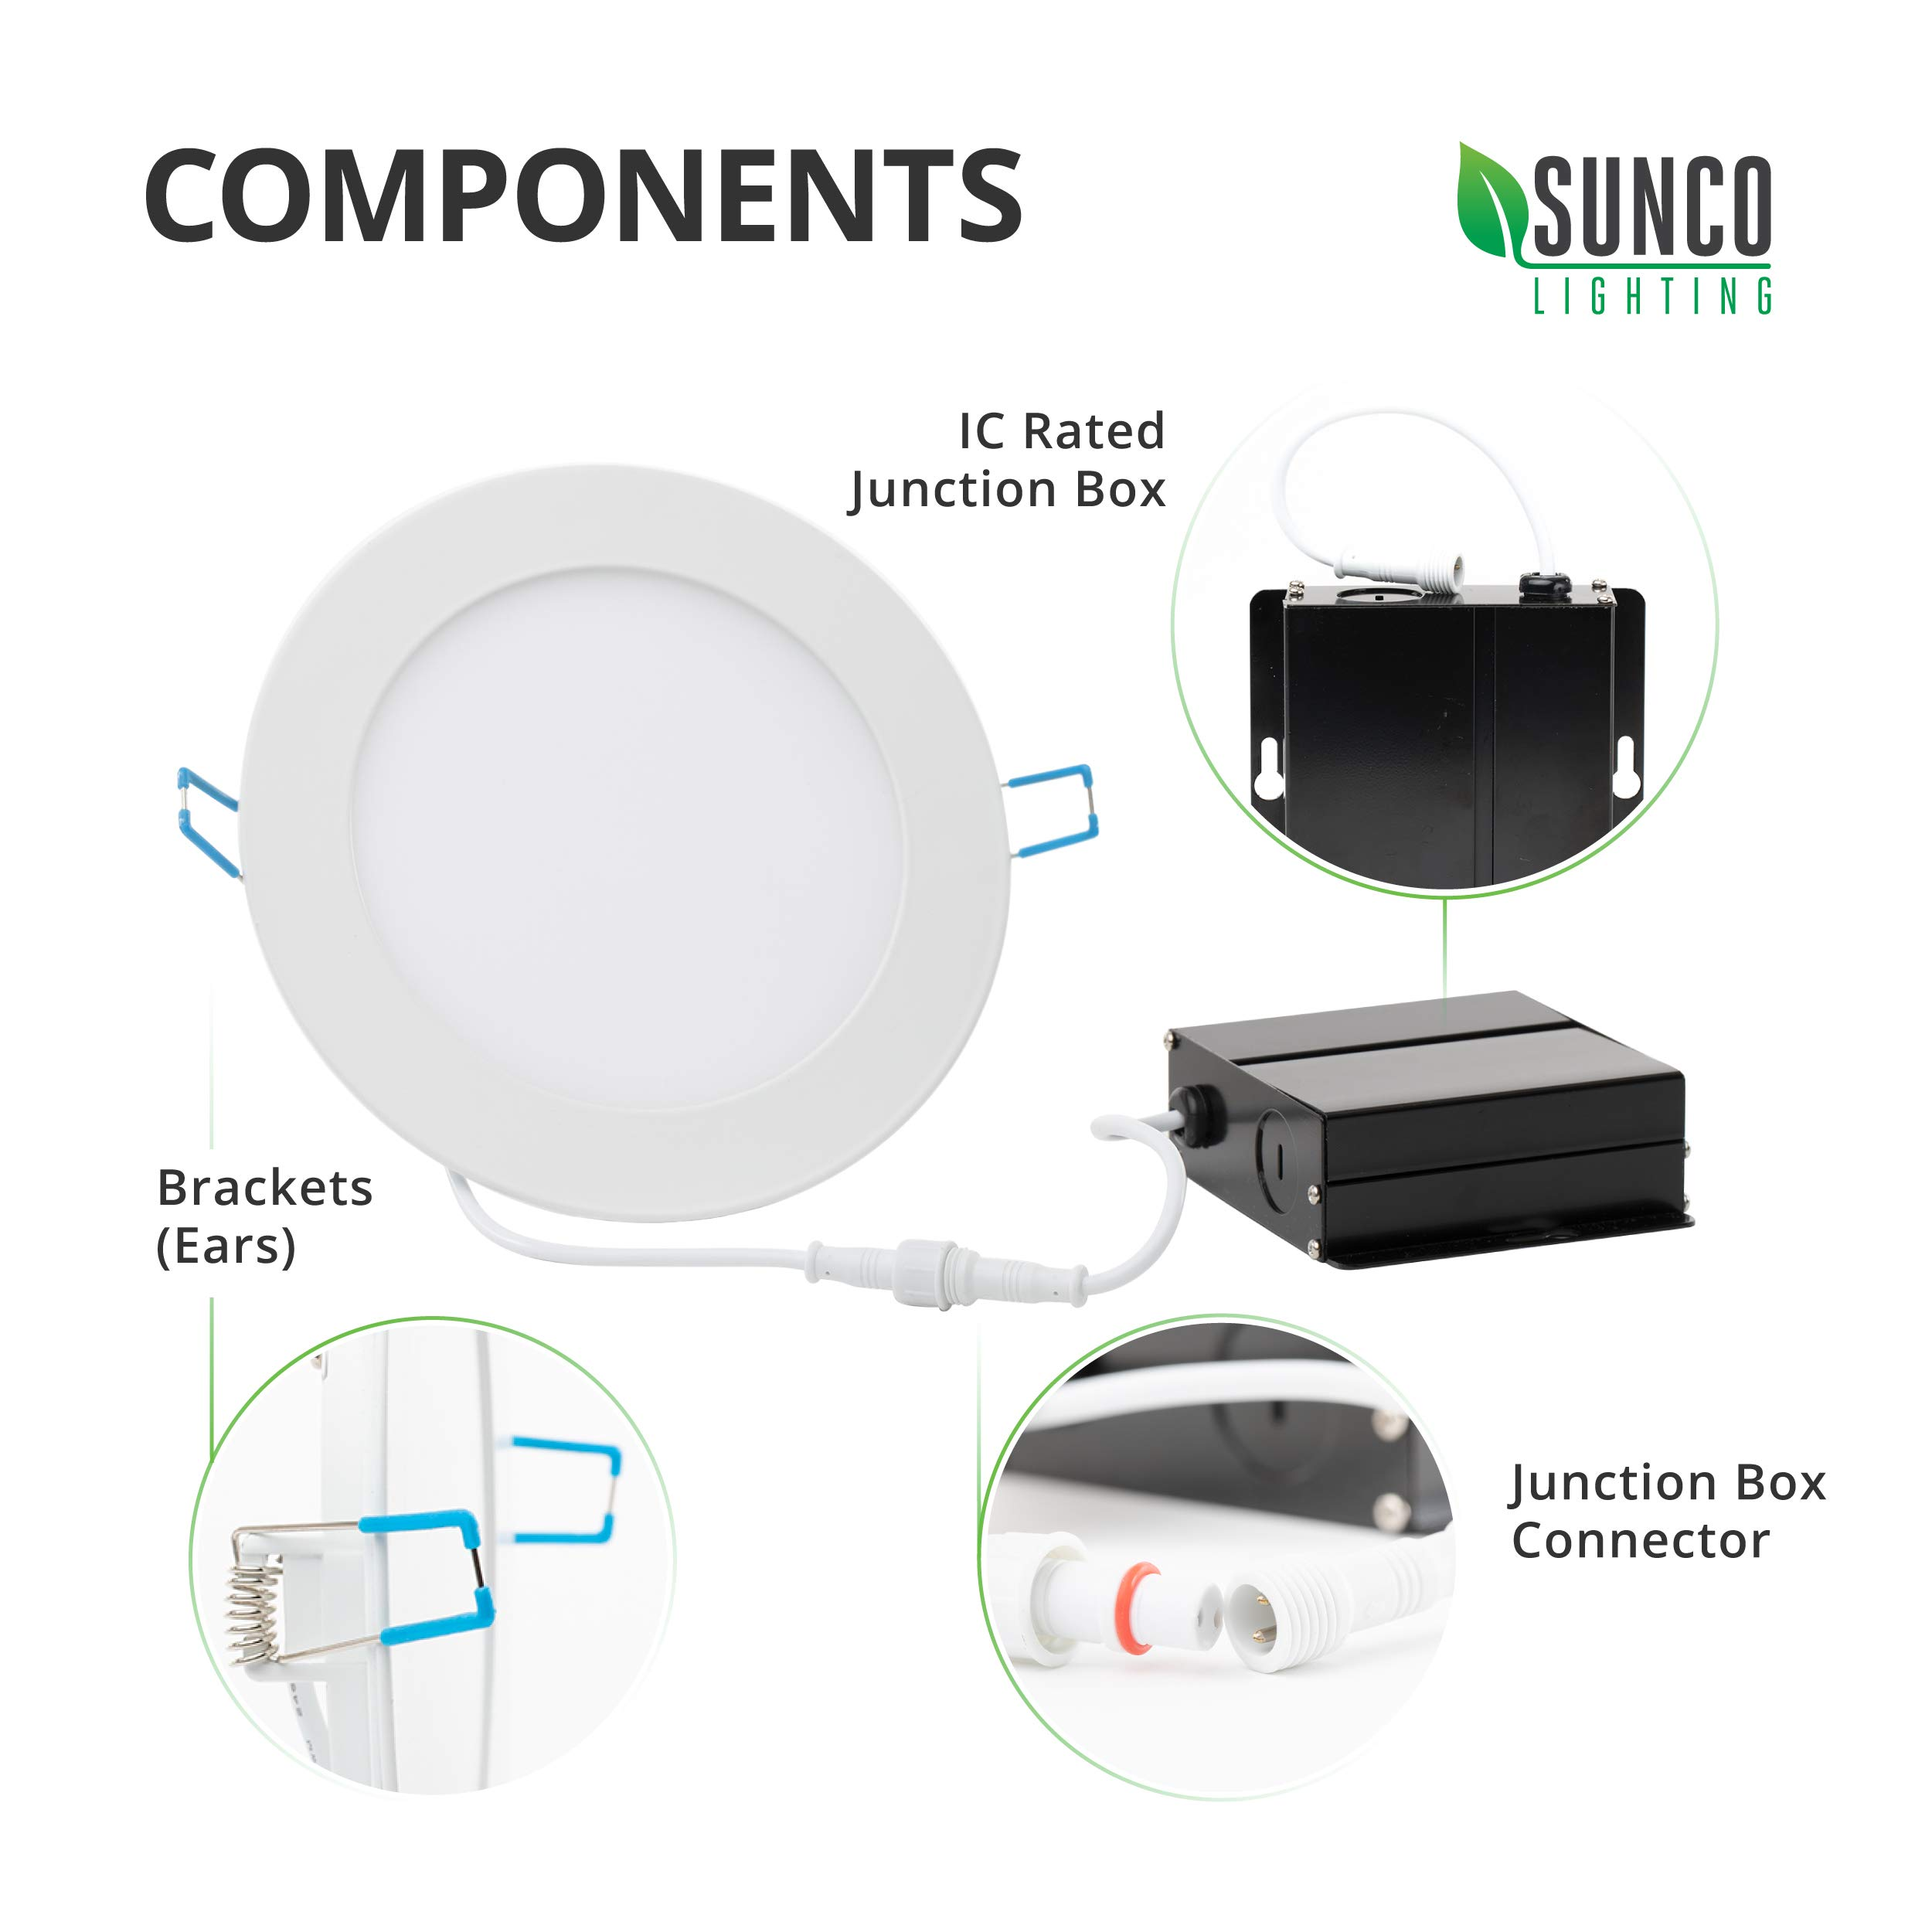 Sunco Lighting 12 Pack 6 Inch Slim LED Downlight with Junction Box, 14W=100W, 850 LM, Dimmable, 4000K Cool White, Recessed Jbox Fixture, Simple Retrofit Installation - ETL & Energy Star by Sunco Lighting (Image #8)